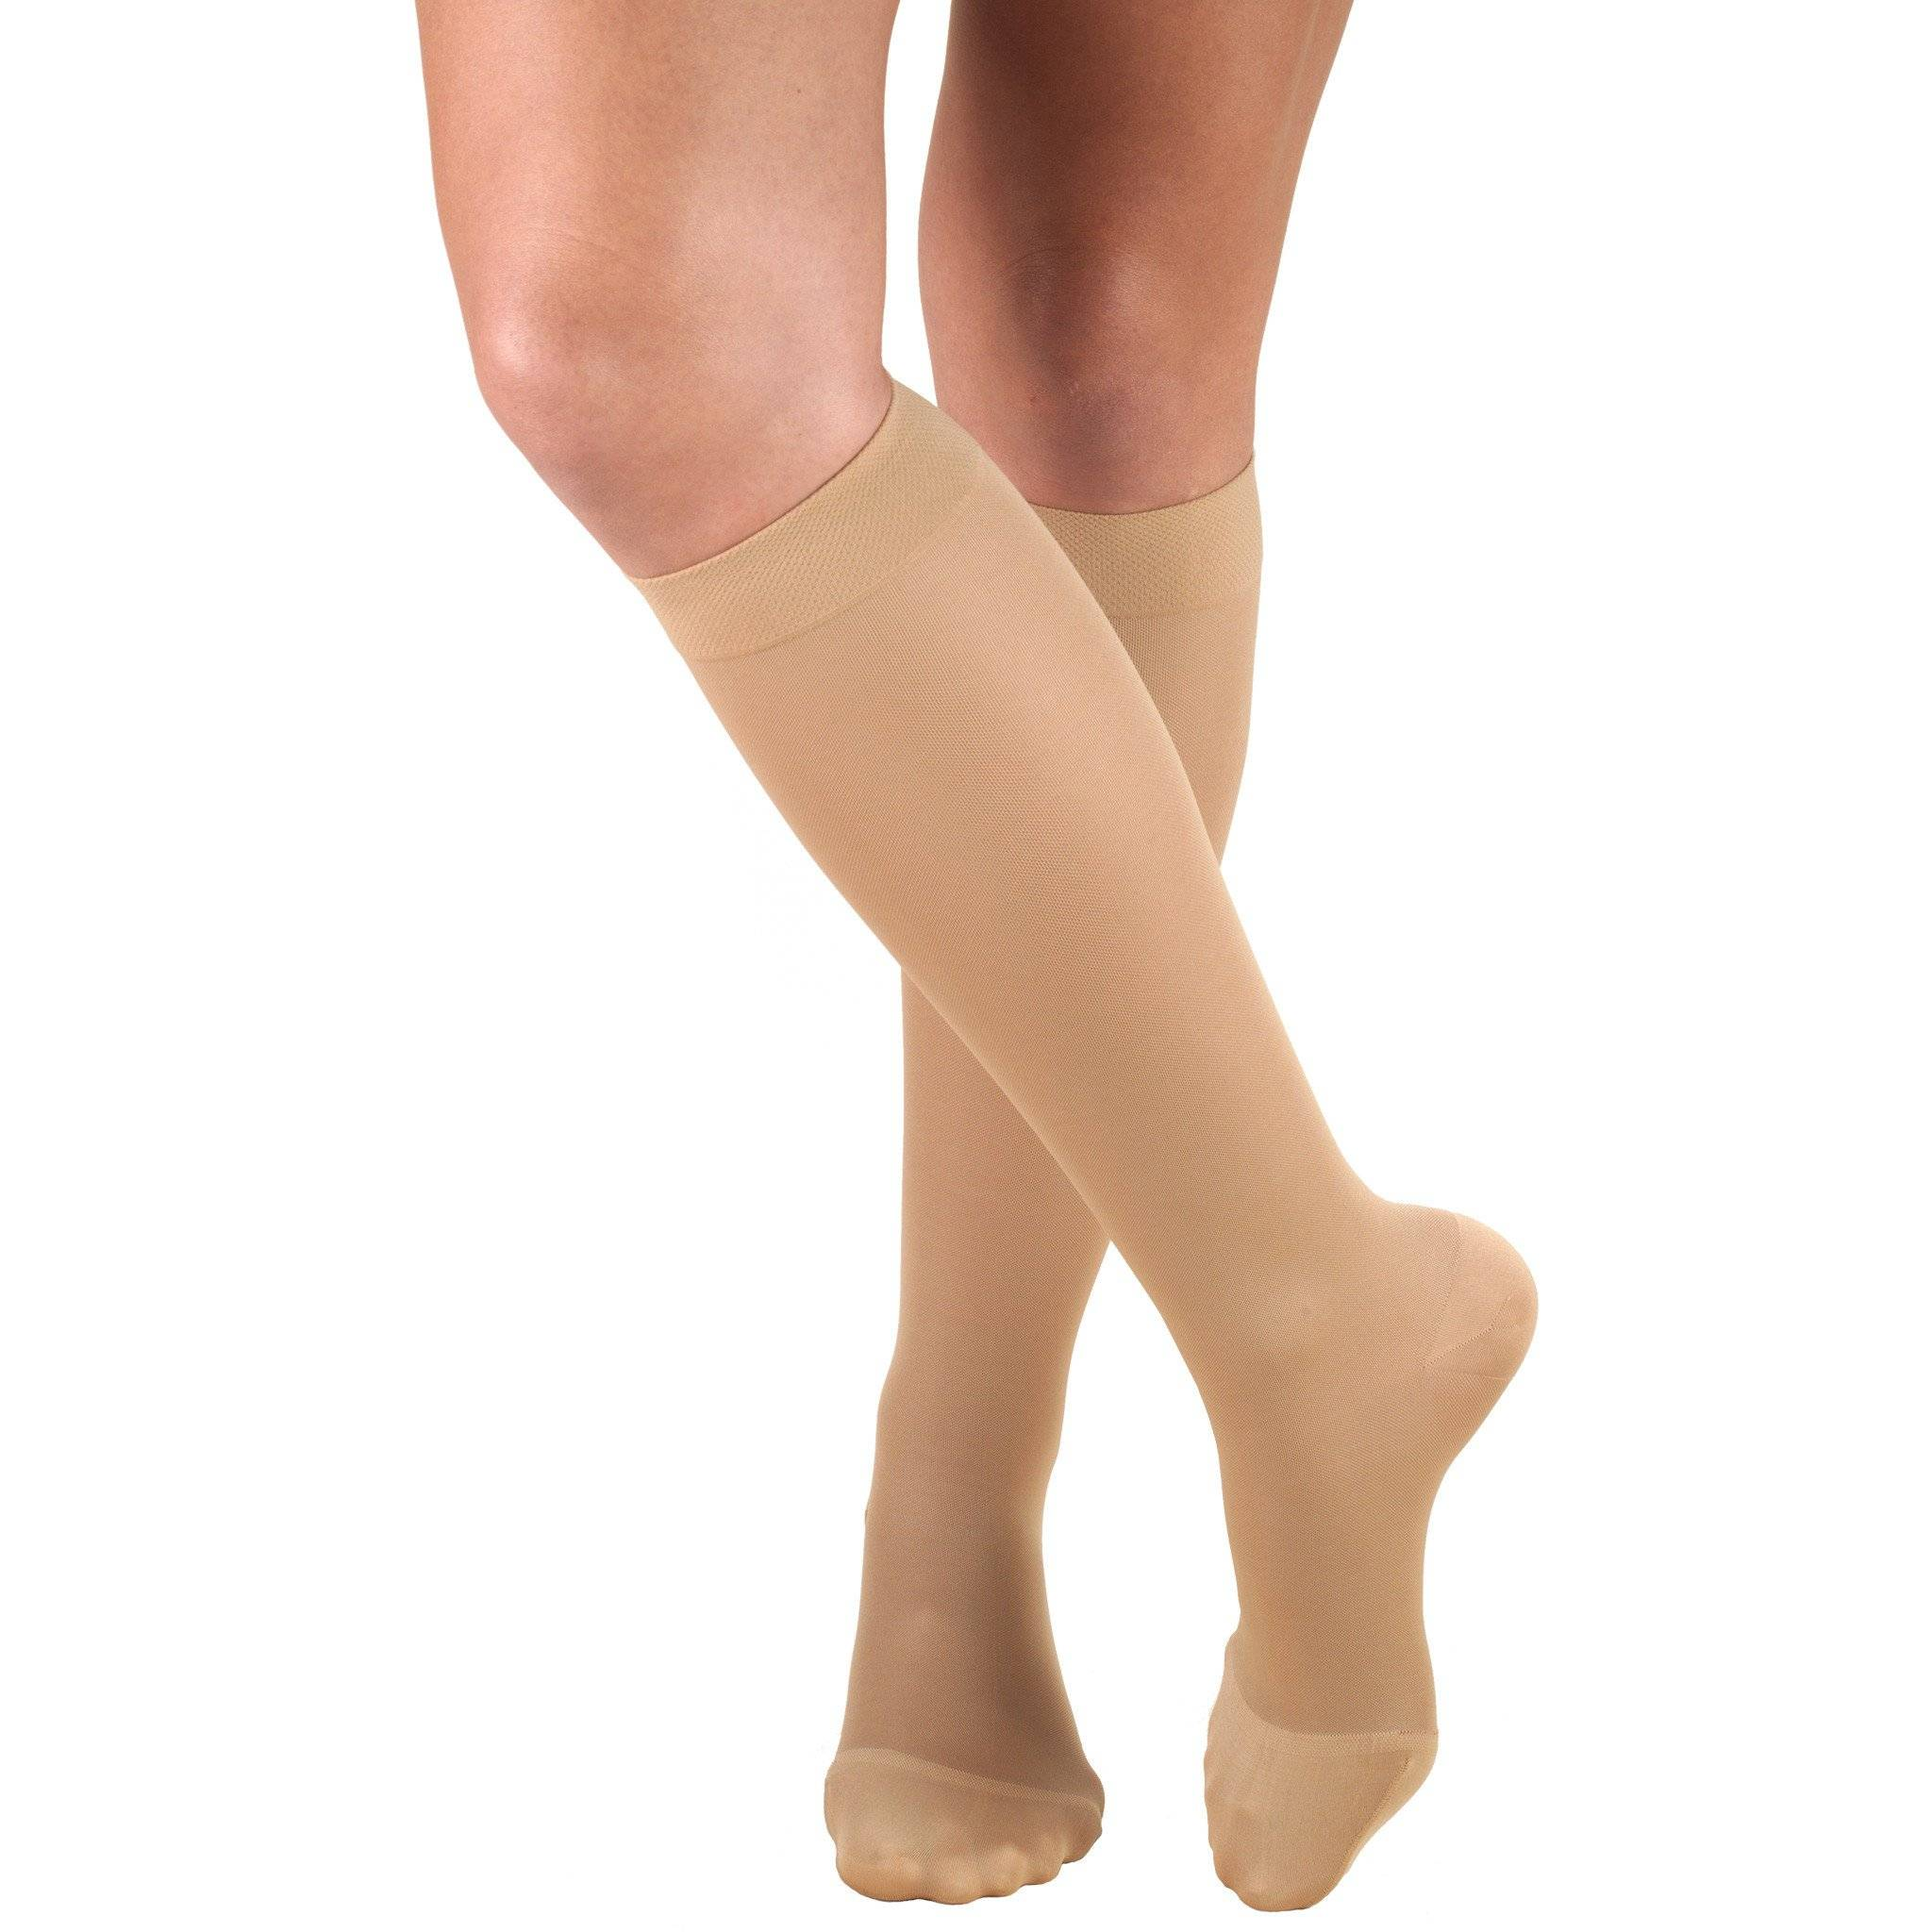 Ladies' Knee High Closed Toe Opaque Stockings